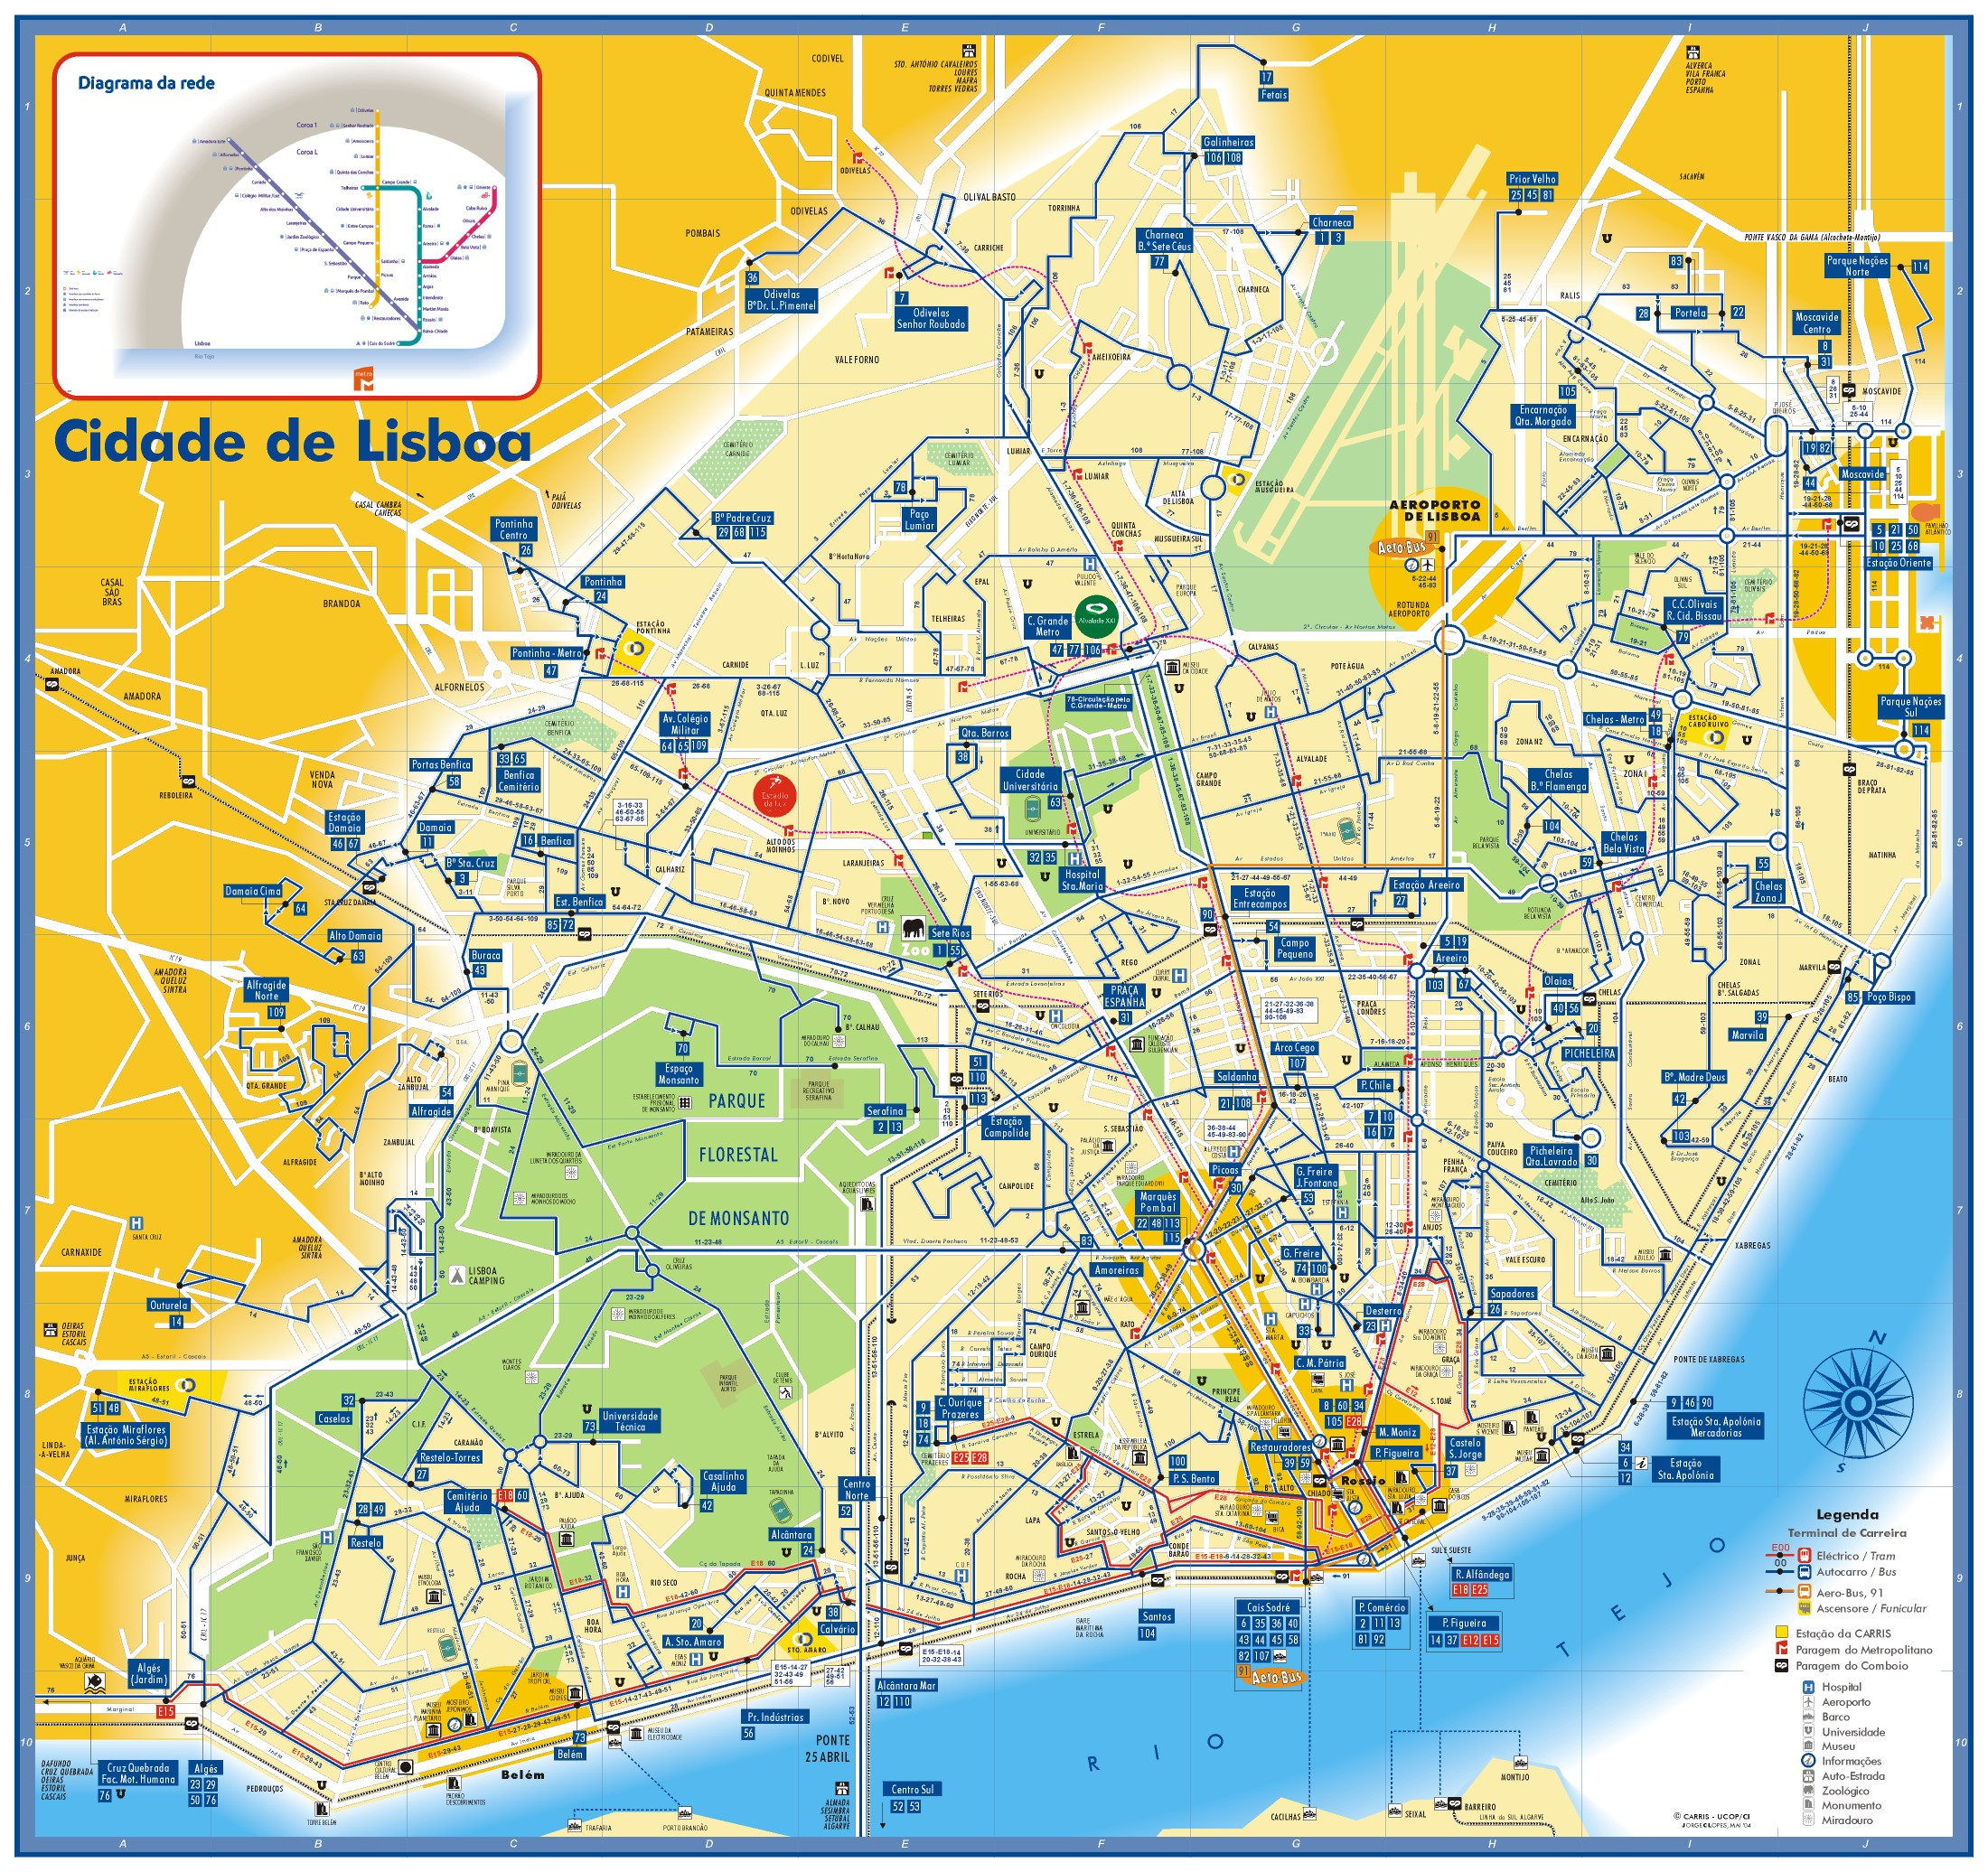 Lisbon Tourist Attractions Map - Aishouzuo - Lisbon Tourist Map Printable